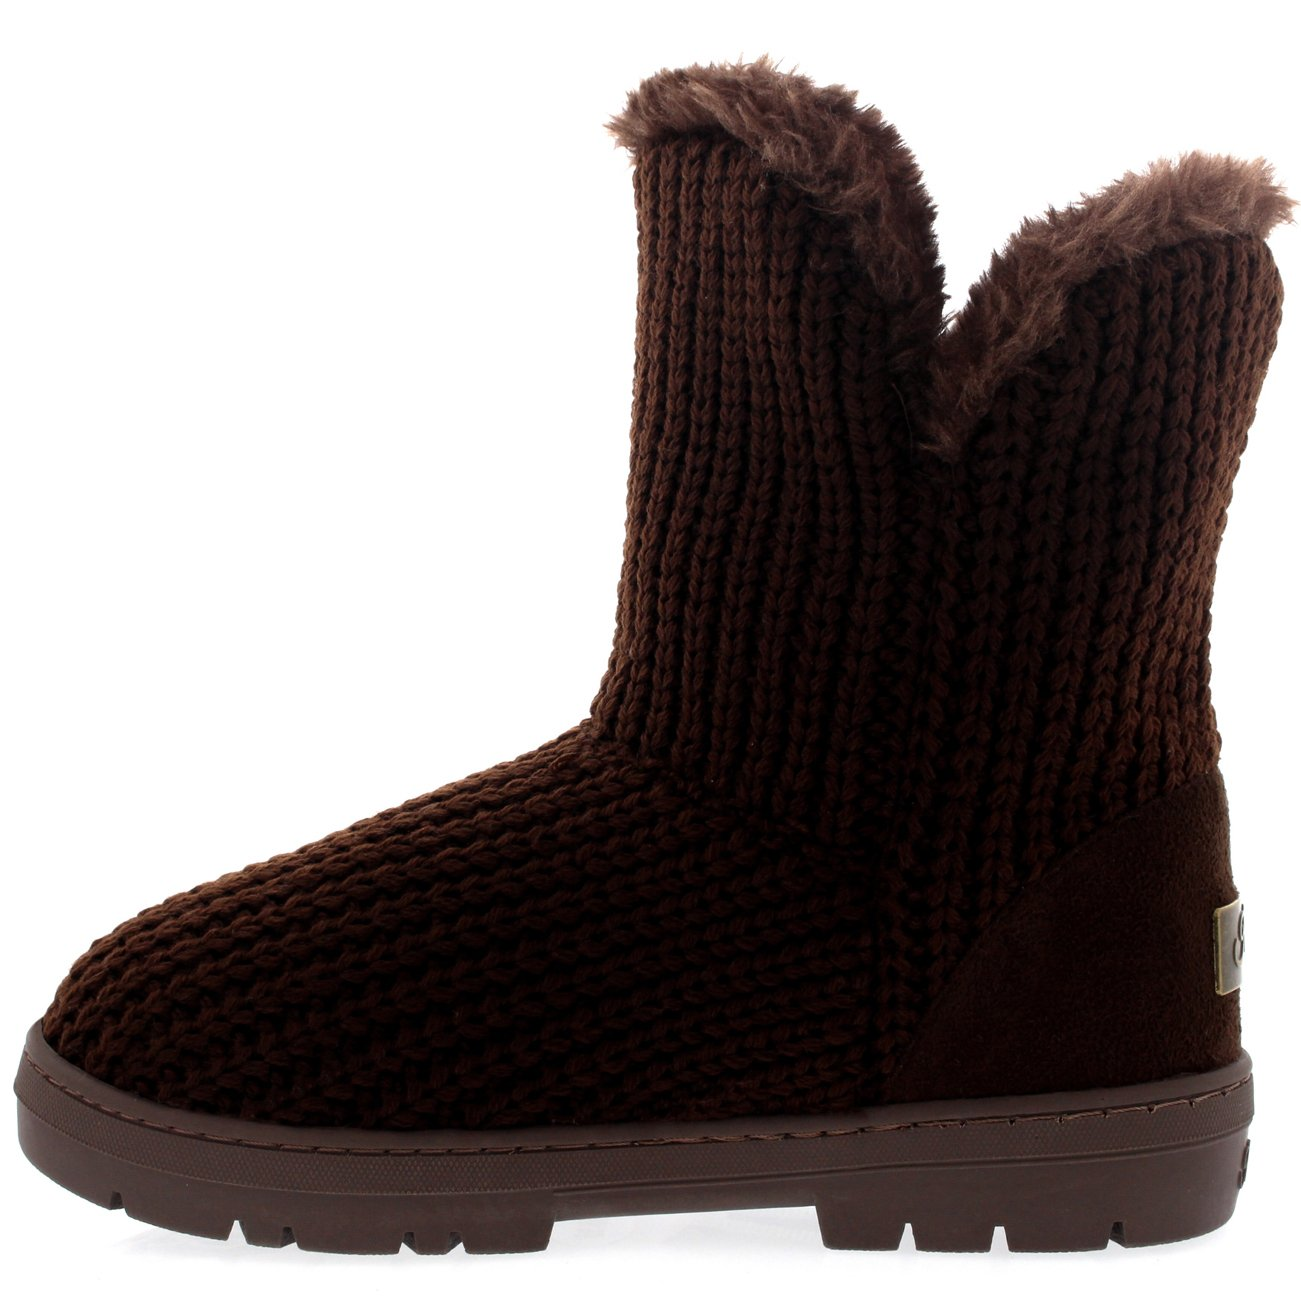 Womens Single Button Fully Fur Lined Waterproof Winter Snow Boots B00YUUGIAW 7 B(M) US|Brown Knitted